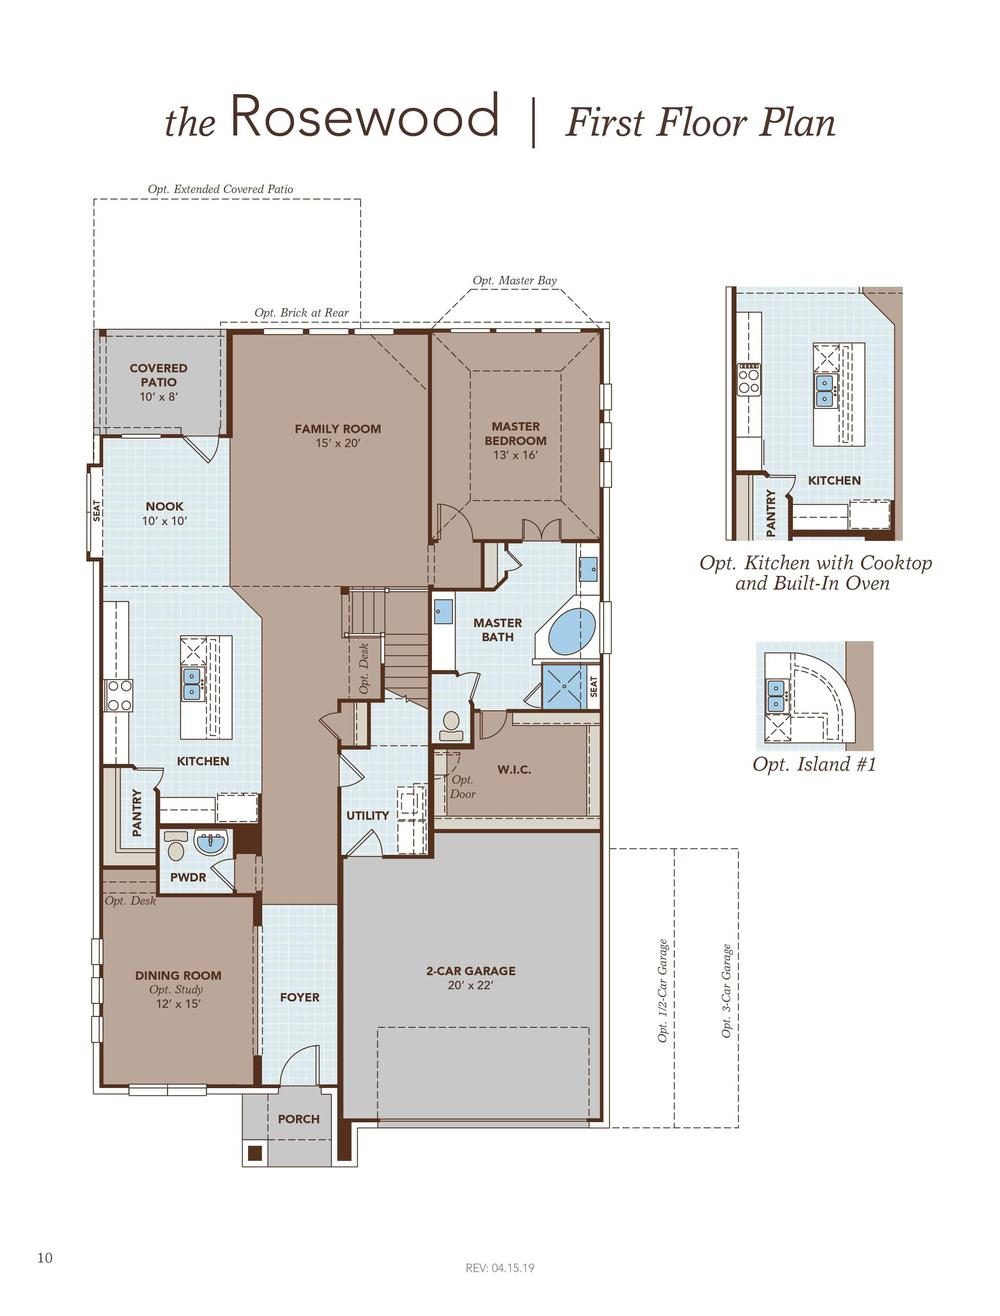 Rosewood First Floor Plan